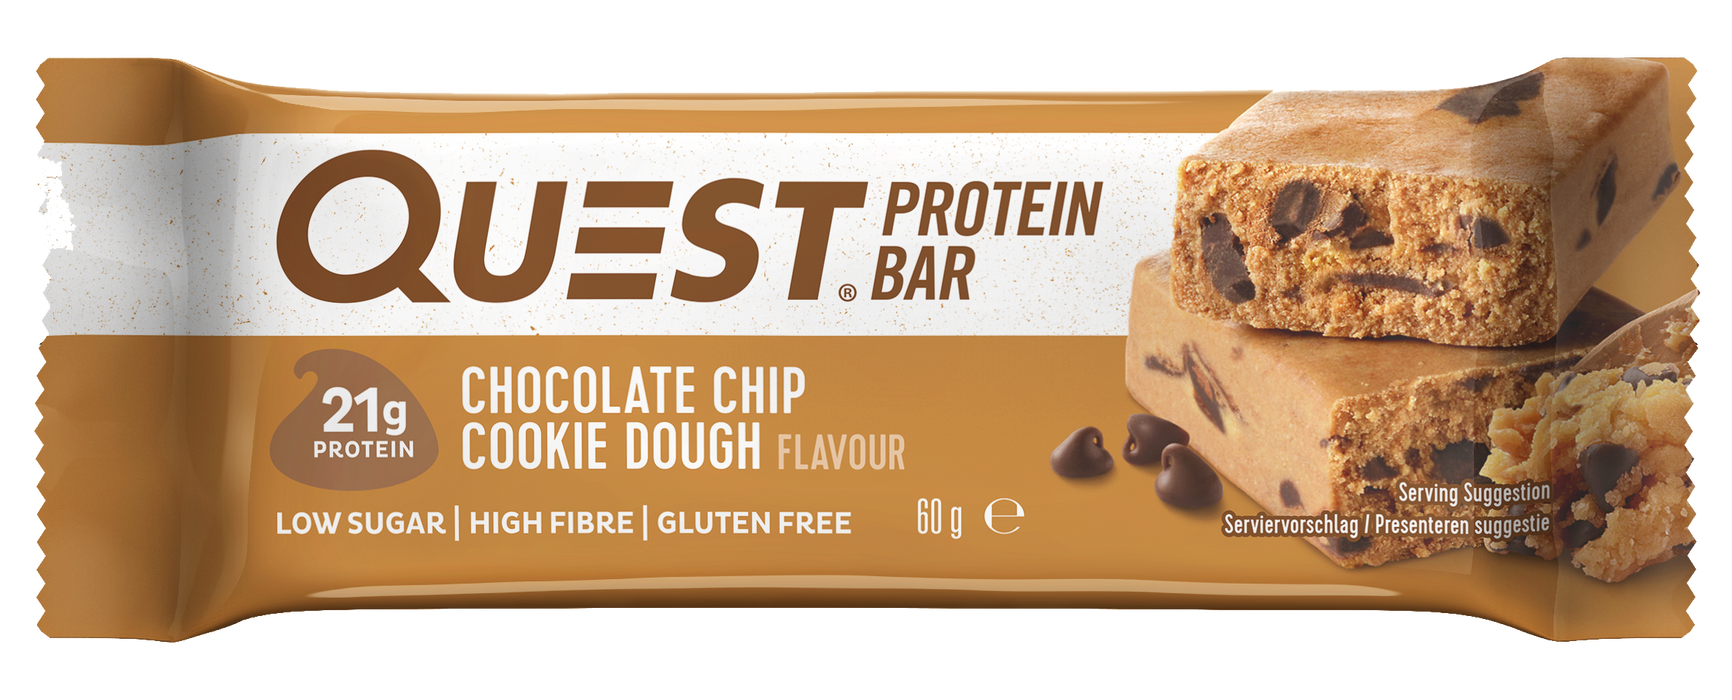 Quest Chocolate Chip Cookie Dough Protein Bar 60g - Case of 12 Multisave